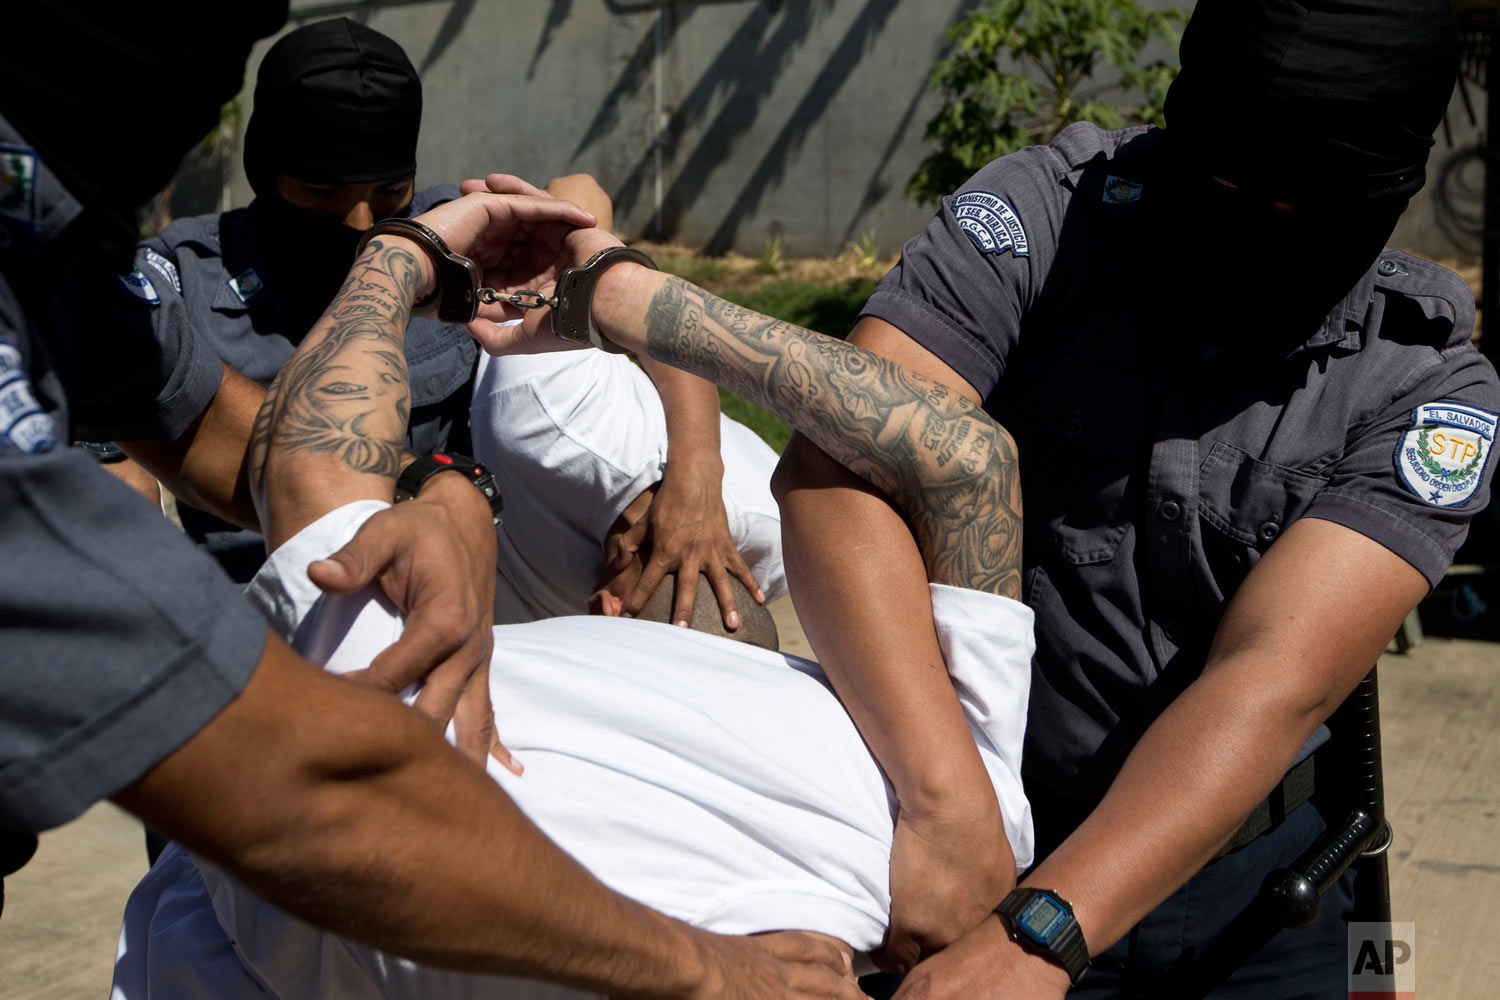 Jailed men identified by authorities as members of the Mara Salvatrucha gang are escorted in handcuffs by masked prison guards to the Zacatras high security prison where they will await trials for murder in Zacatecoluca, El Salvador, Jan. 31, 2019. (AP Photo/Moises Castillo)